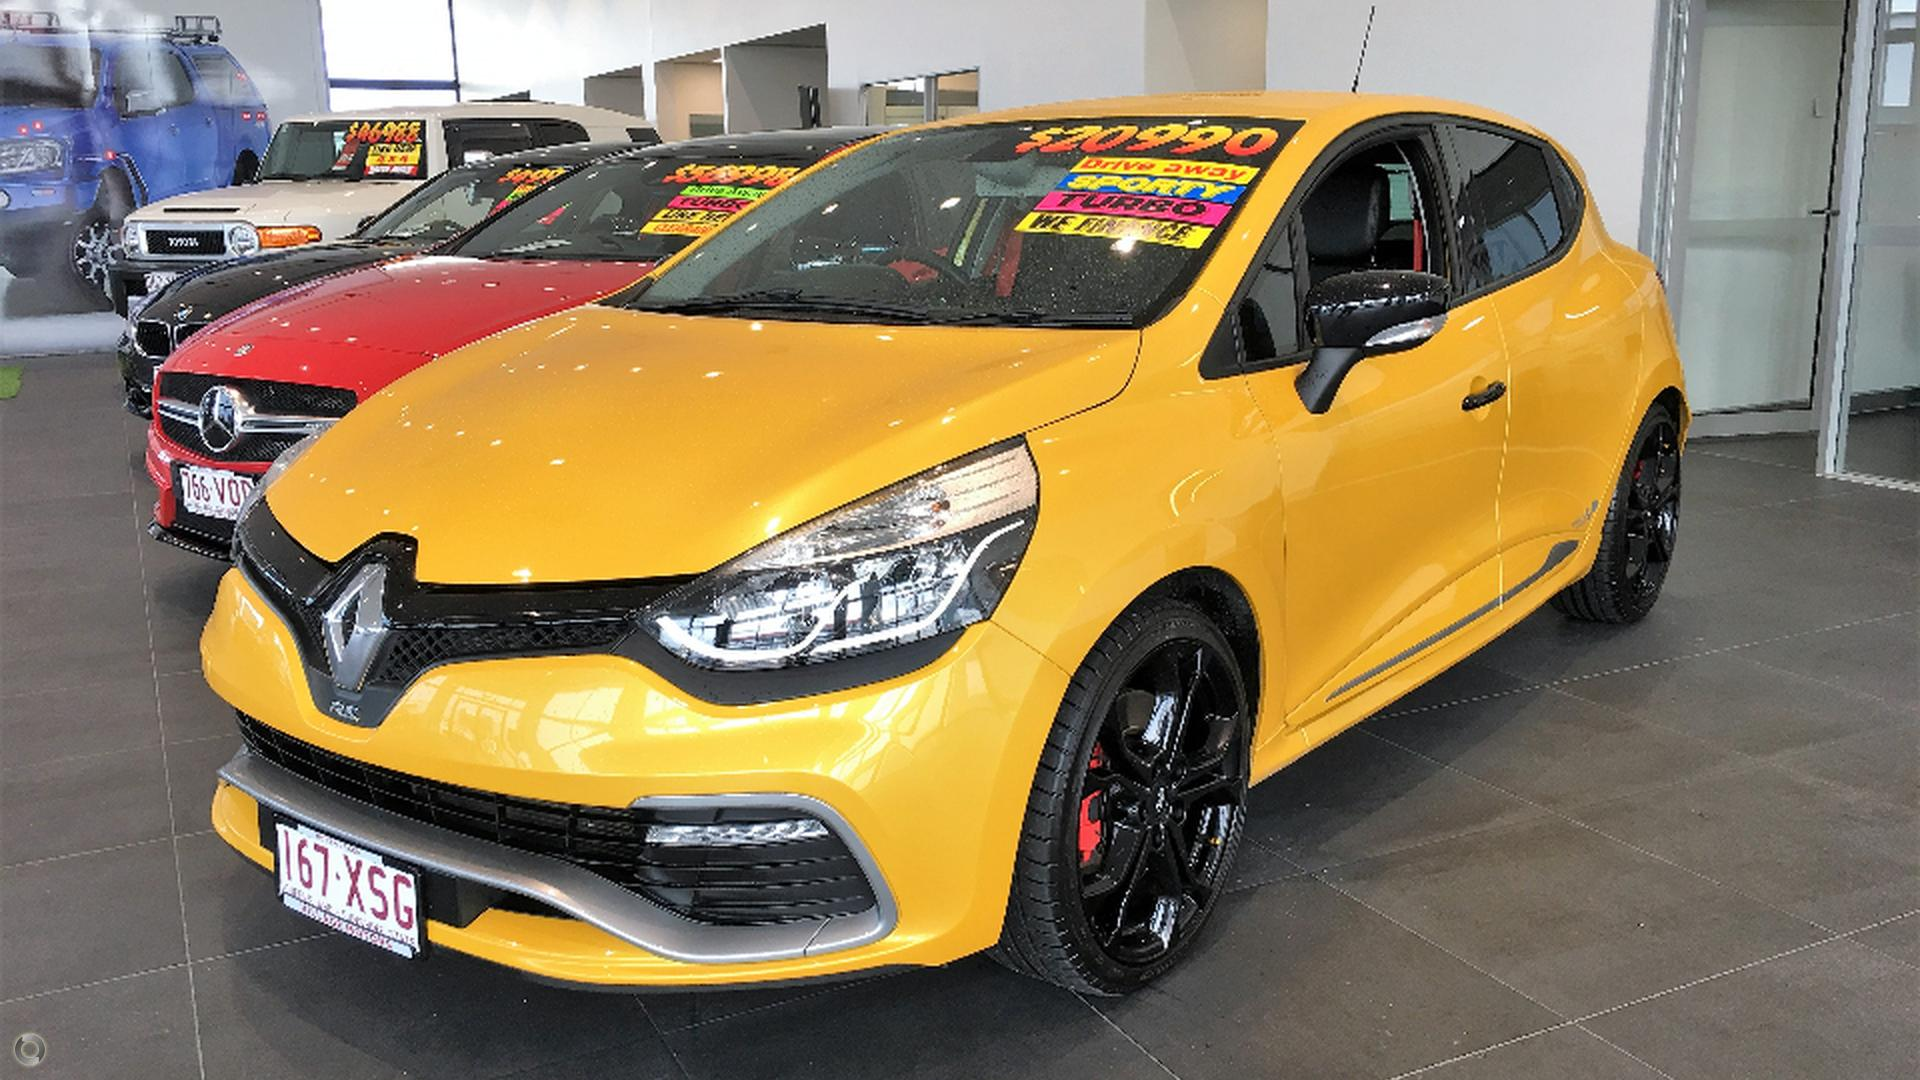 2013 Renault Clio R.S. 200 Cup Trophy IV B98